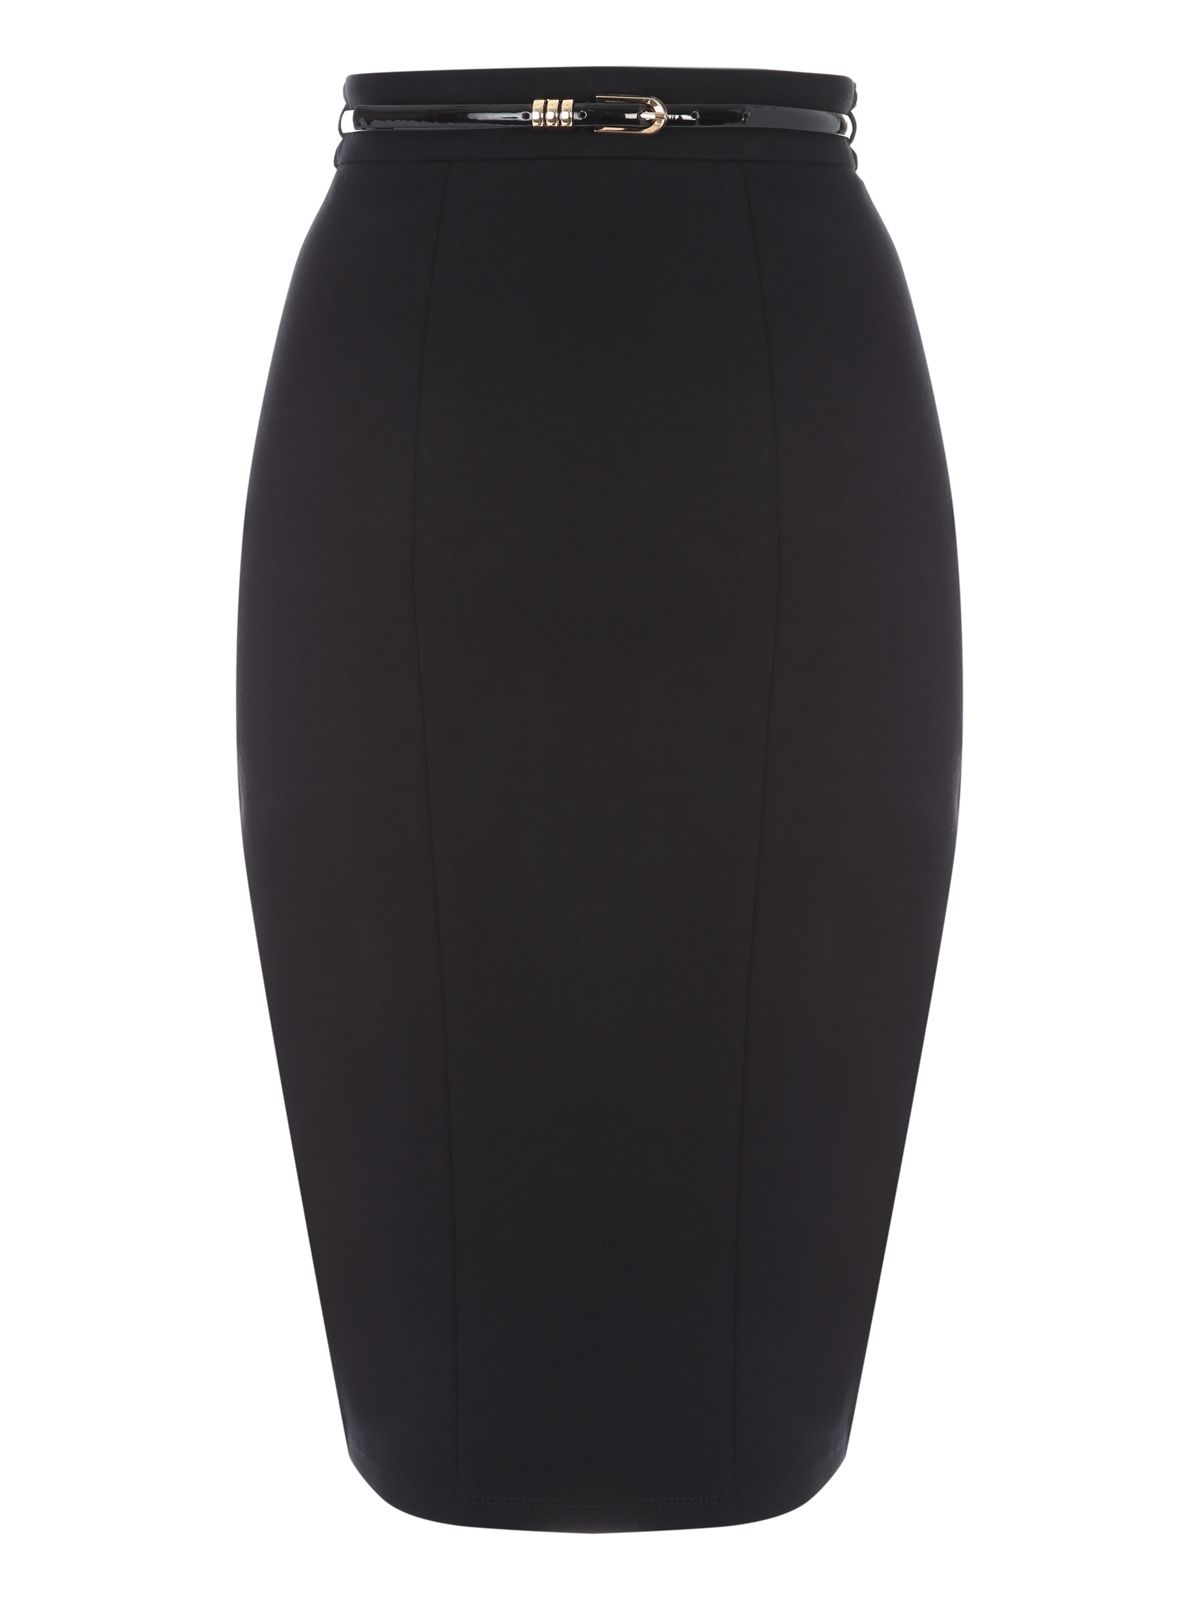 Jane Norman Black Belted Pencil Skirt, Black